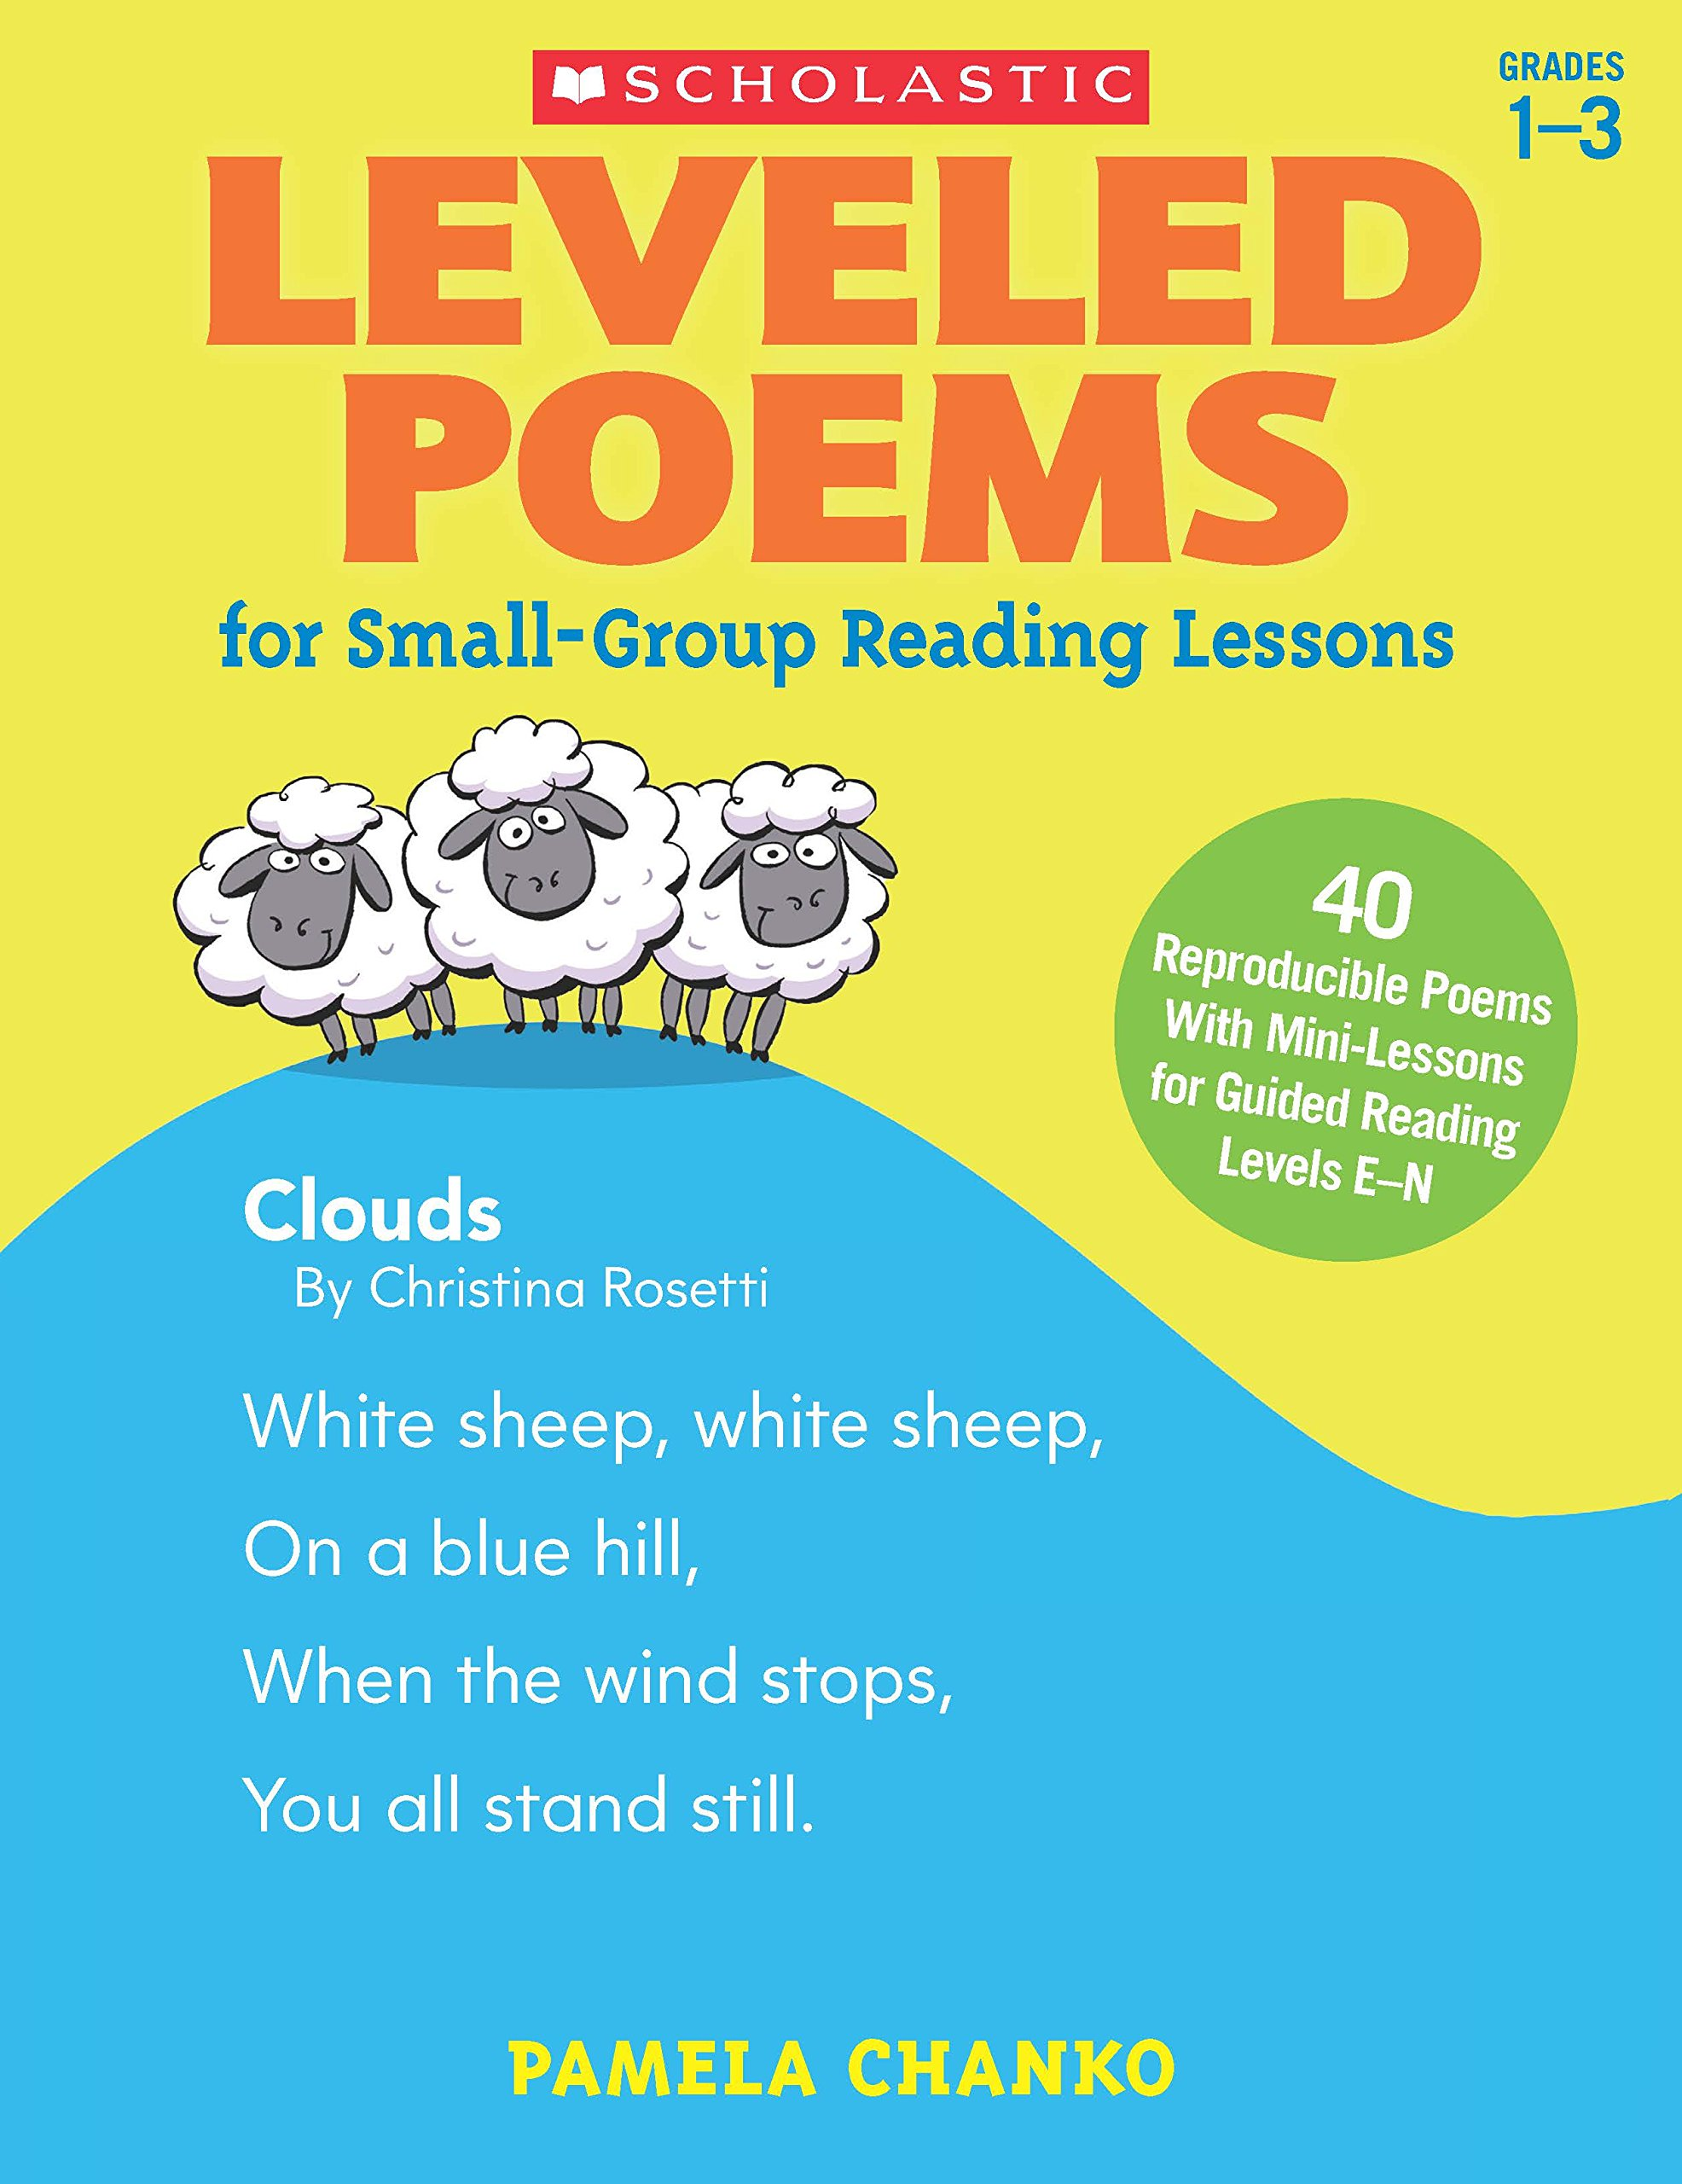 Amazon.com: Leveled Poems for Small-Group Reading Lessons: 40 ...